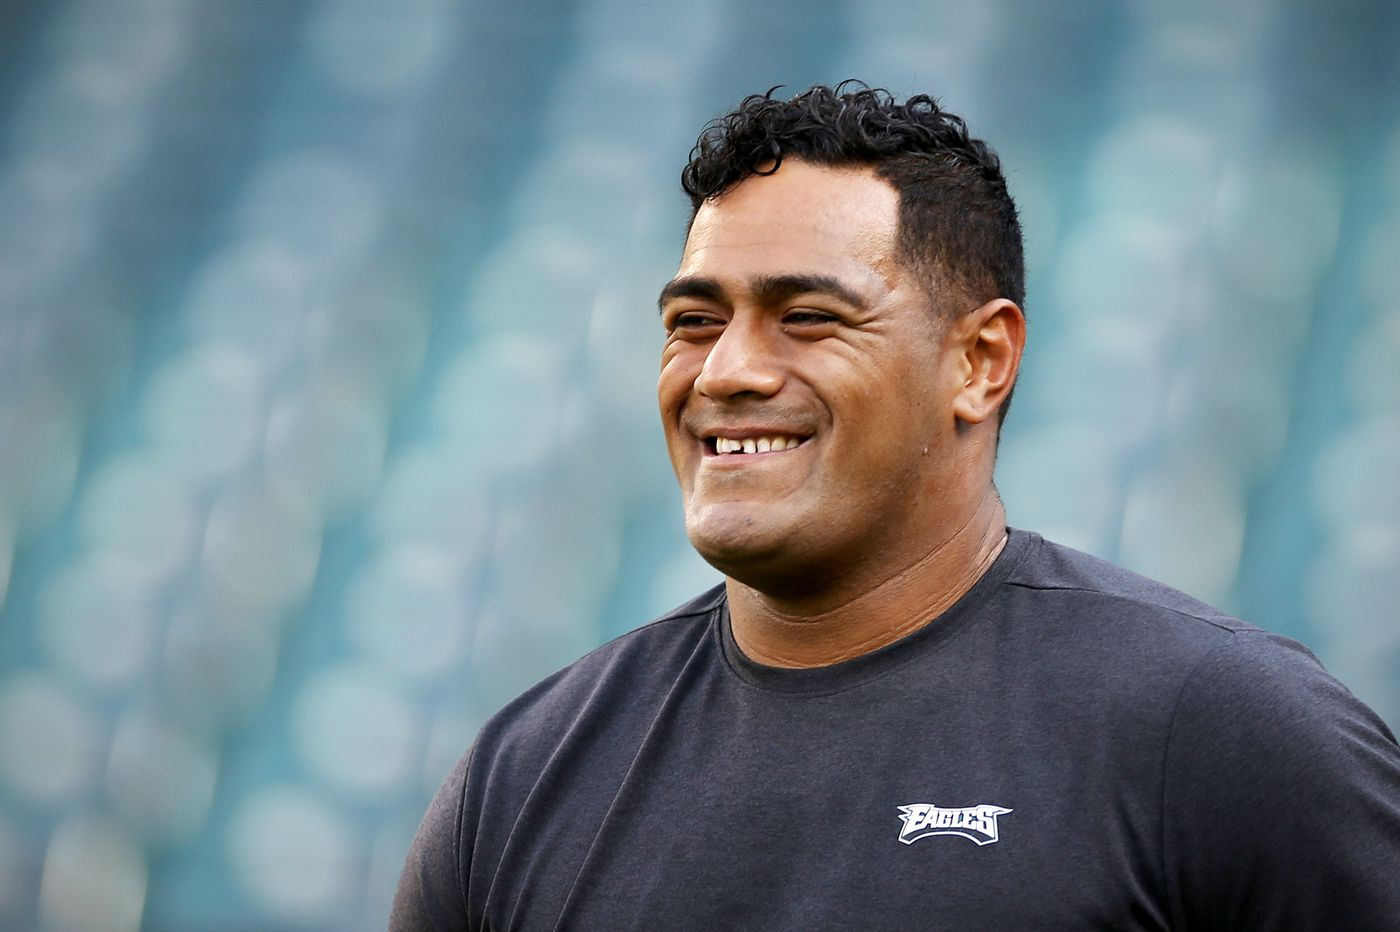 Australia is burning, and Eagles offensive tackle Jordan Mailata desperately wants to help